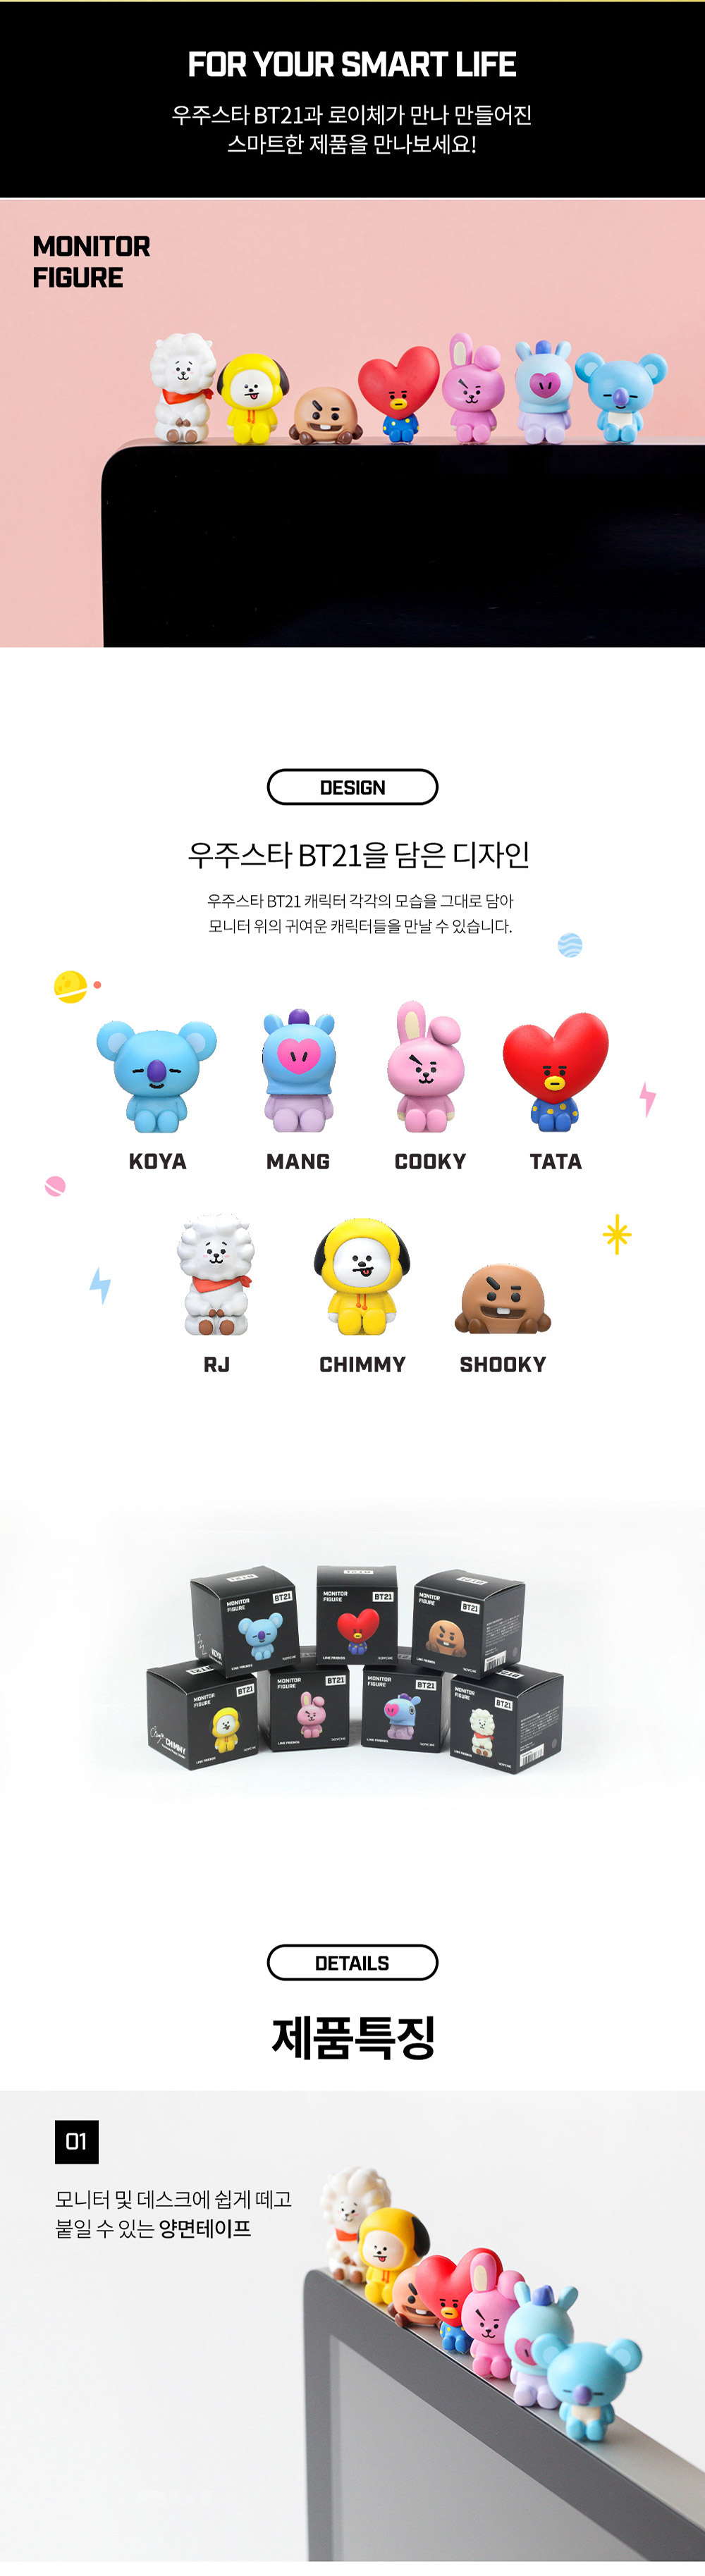 bt21_monitor_figure_02.jpg